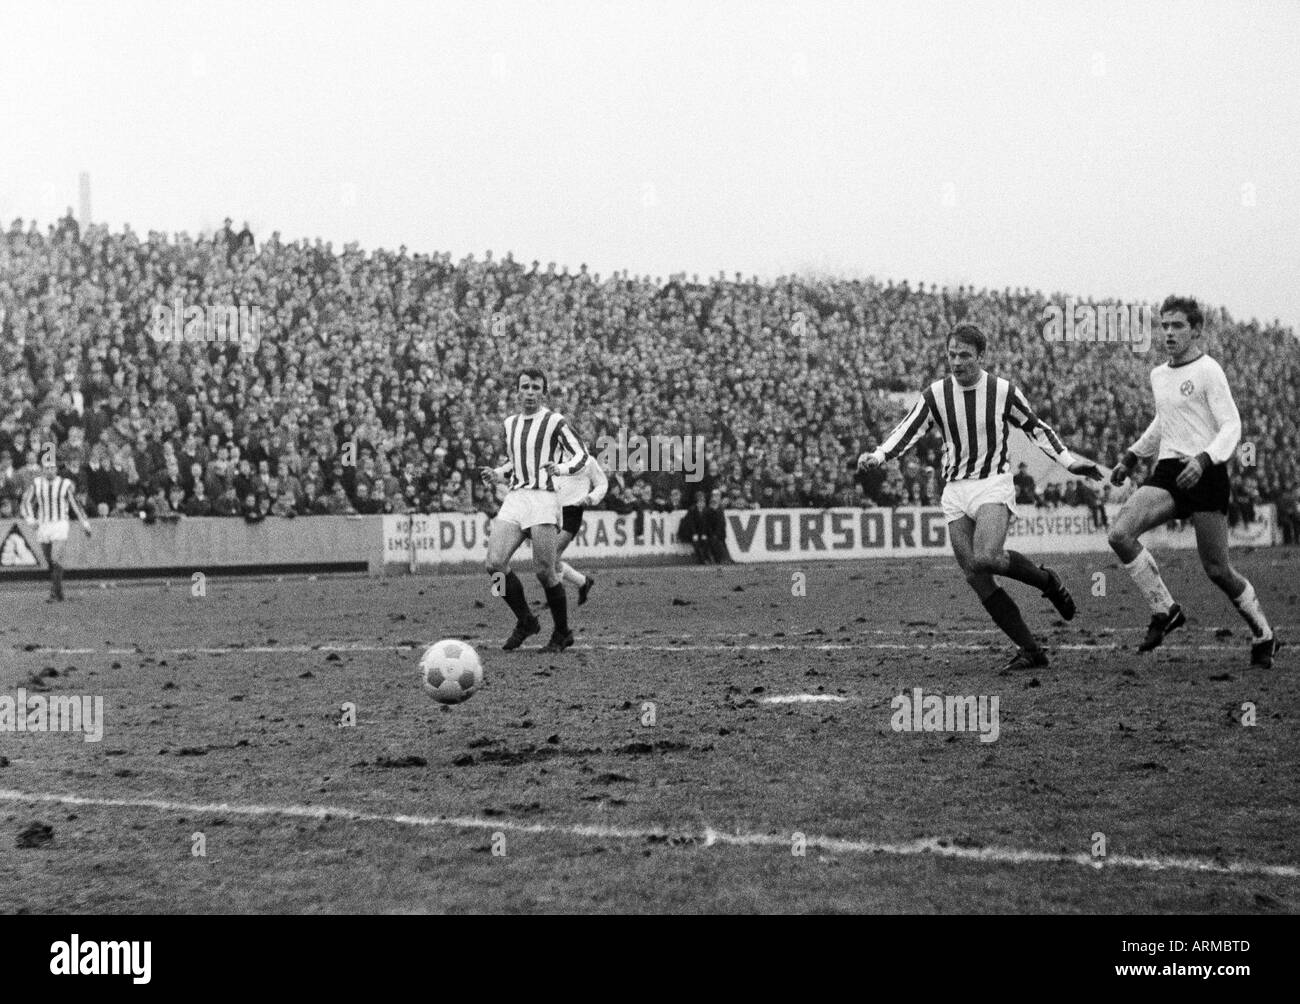 football, friendly game, 1967, Stadium an der Hafenstrasse in Essen, Rot-Weiss Essen versus 1. FC Cologne 0:2, scene of the match, f.l.t.r. Heinz Simmet (Koeln), Karl Heinz Thielen (Koeln), an Essen player - Stock Image